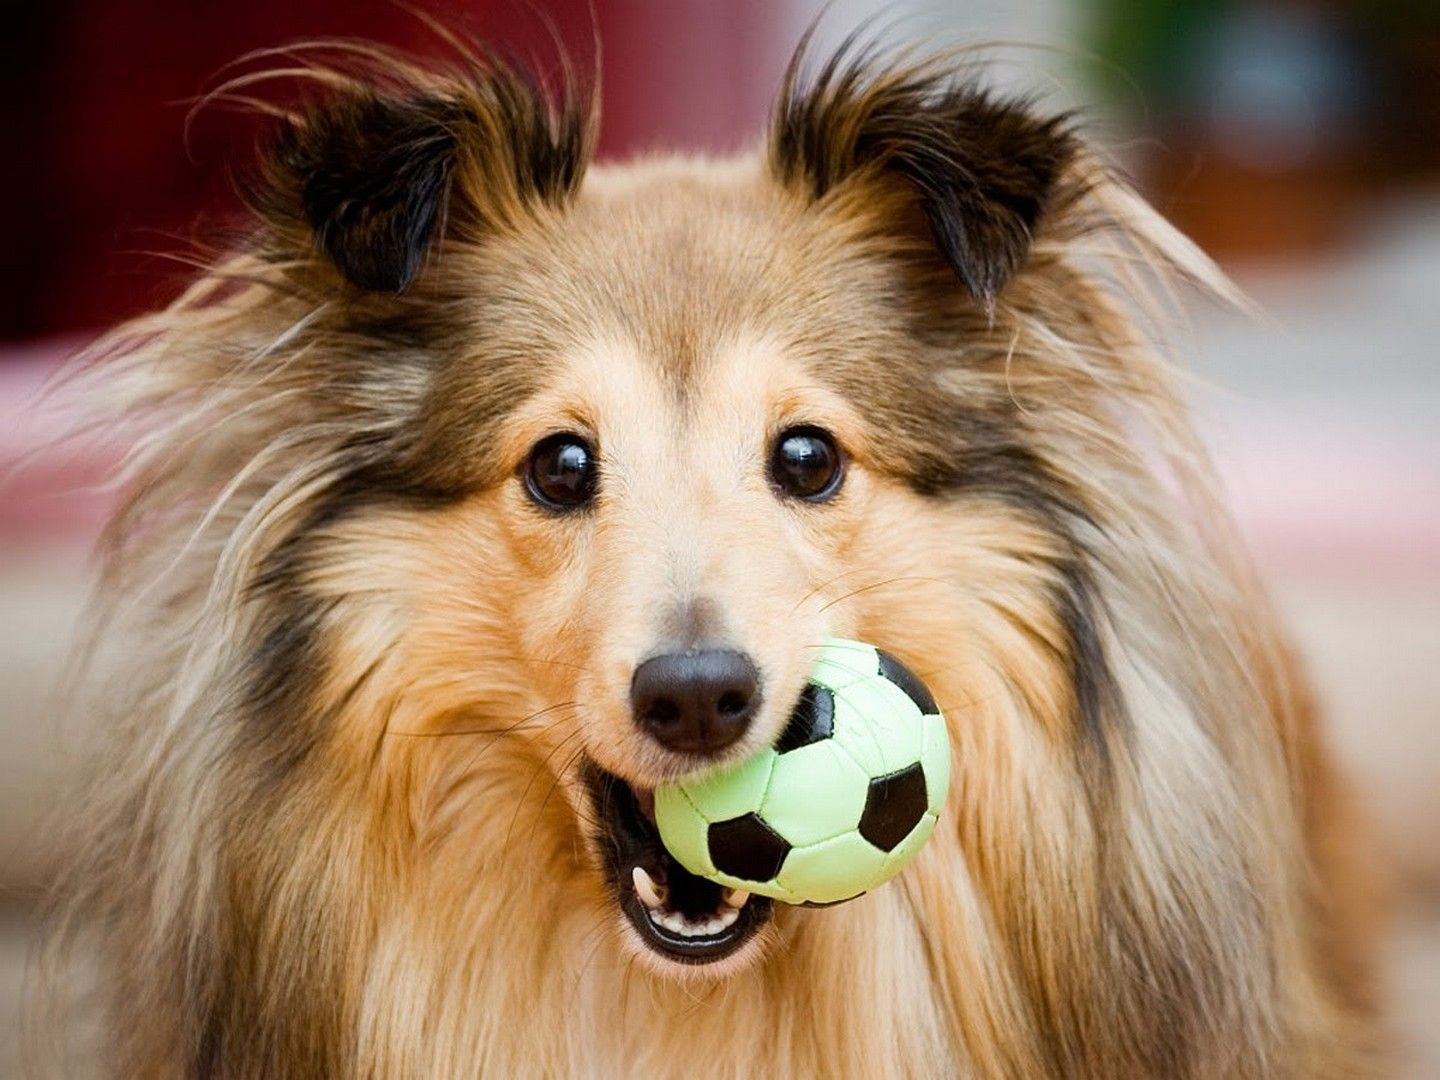 HD sheltie wallpaper | Sheltie wallpaper | Pinterest